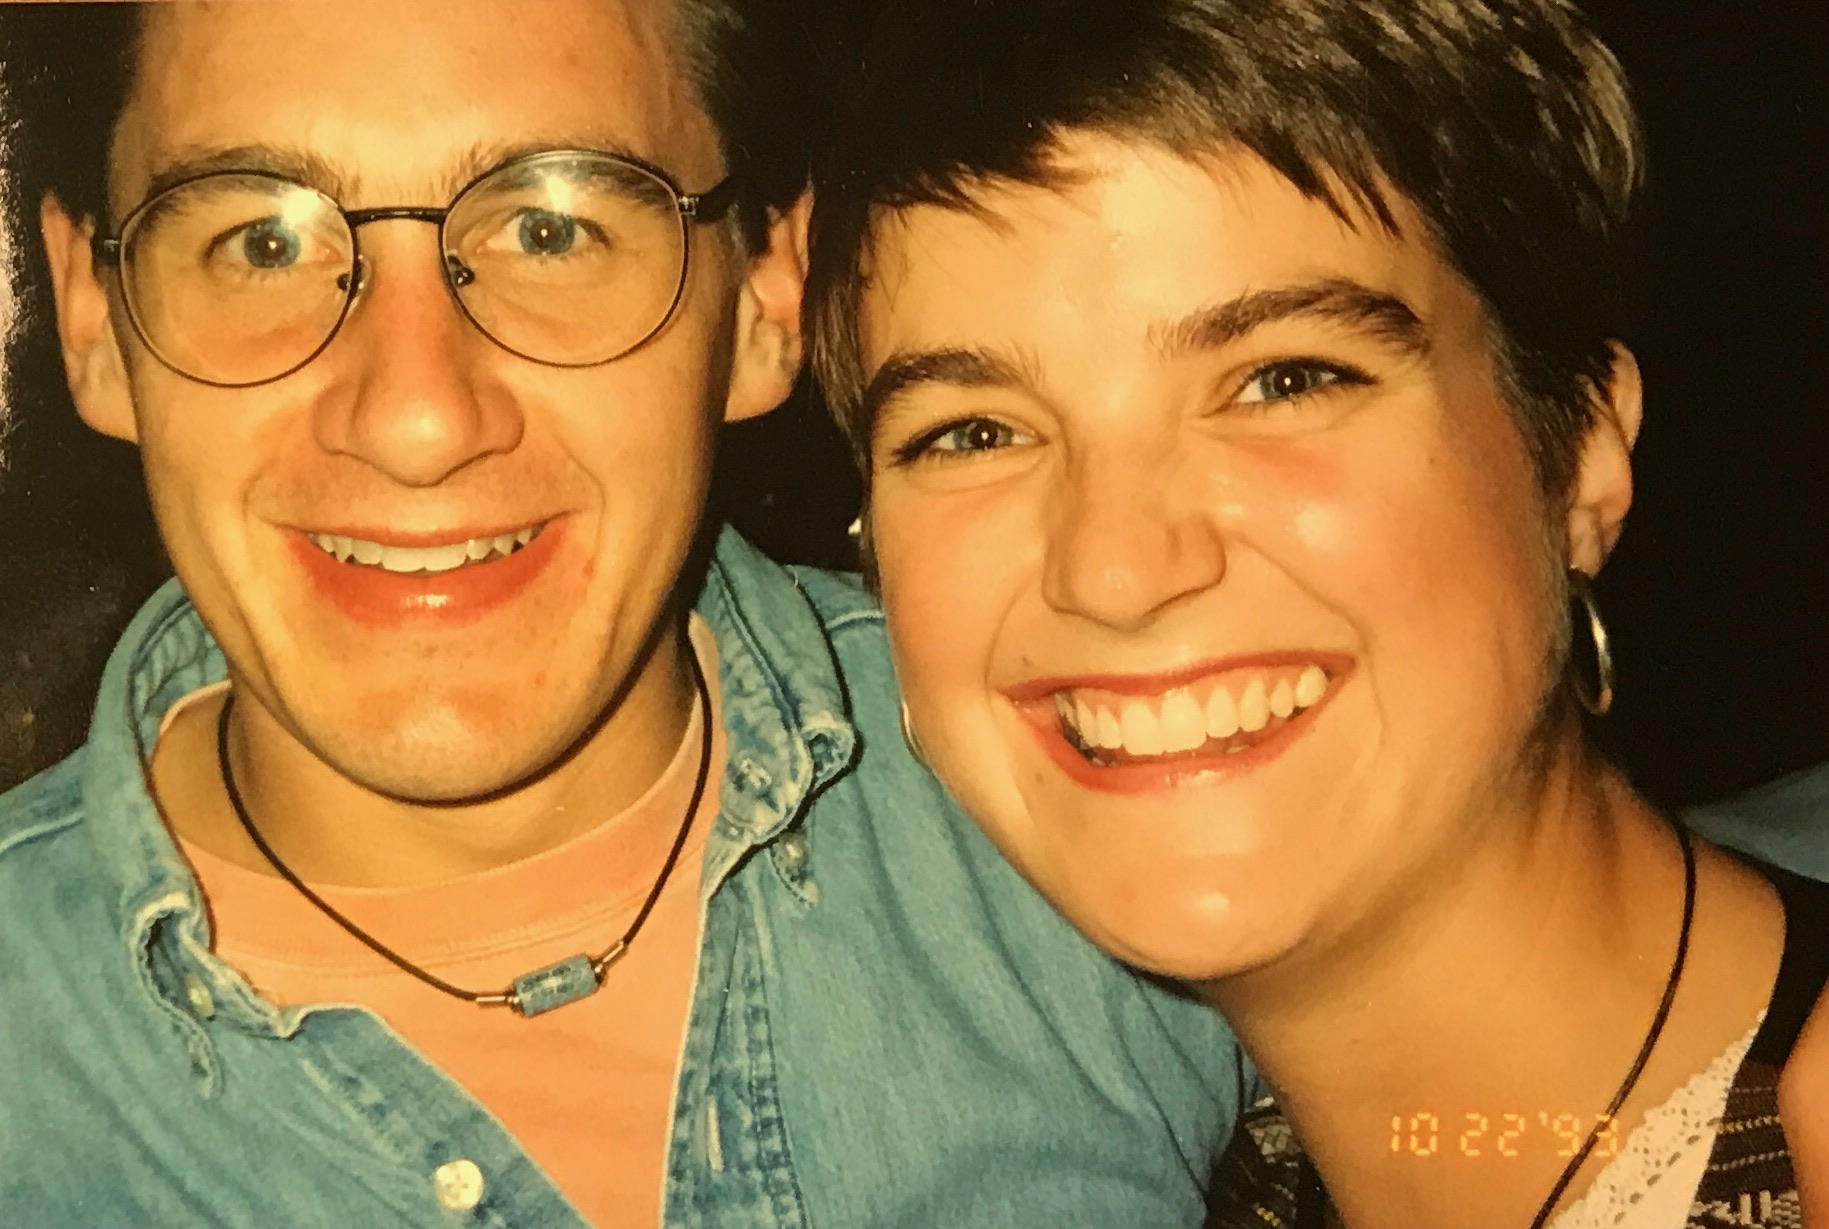 I'm not quite sure… but I think this was taken before a Gear Daddies Concert! We connected over music nearly 30 years ago.